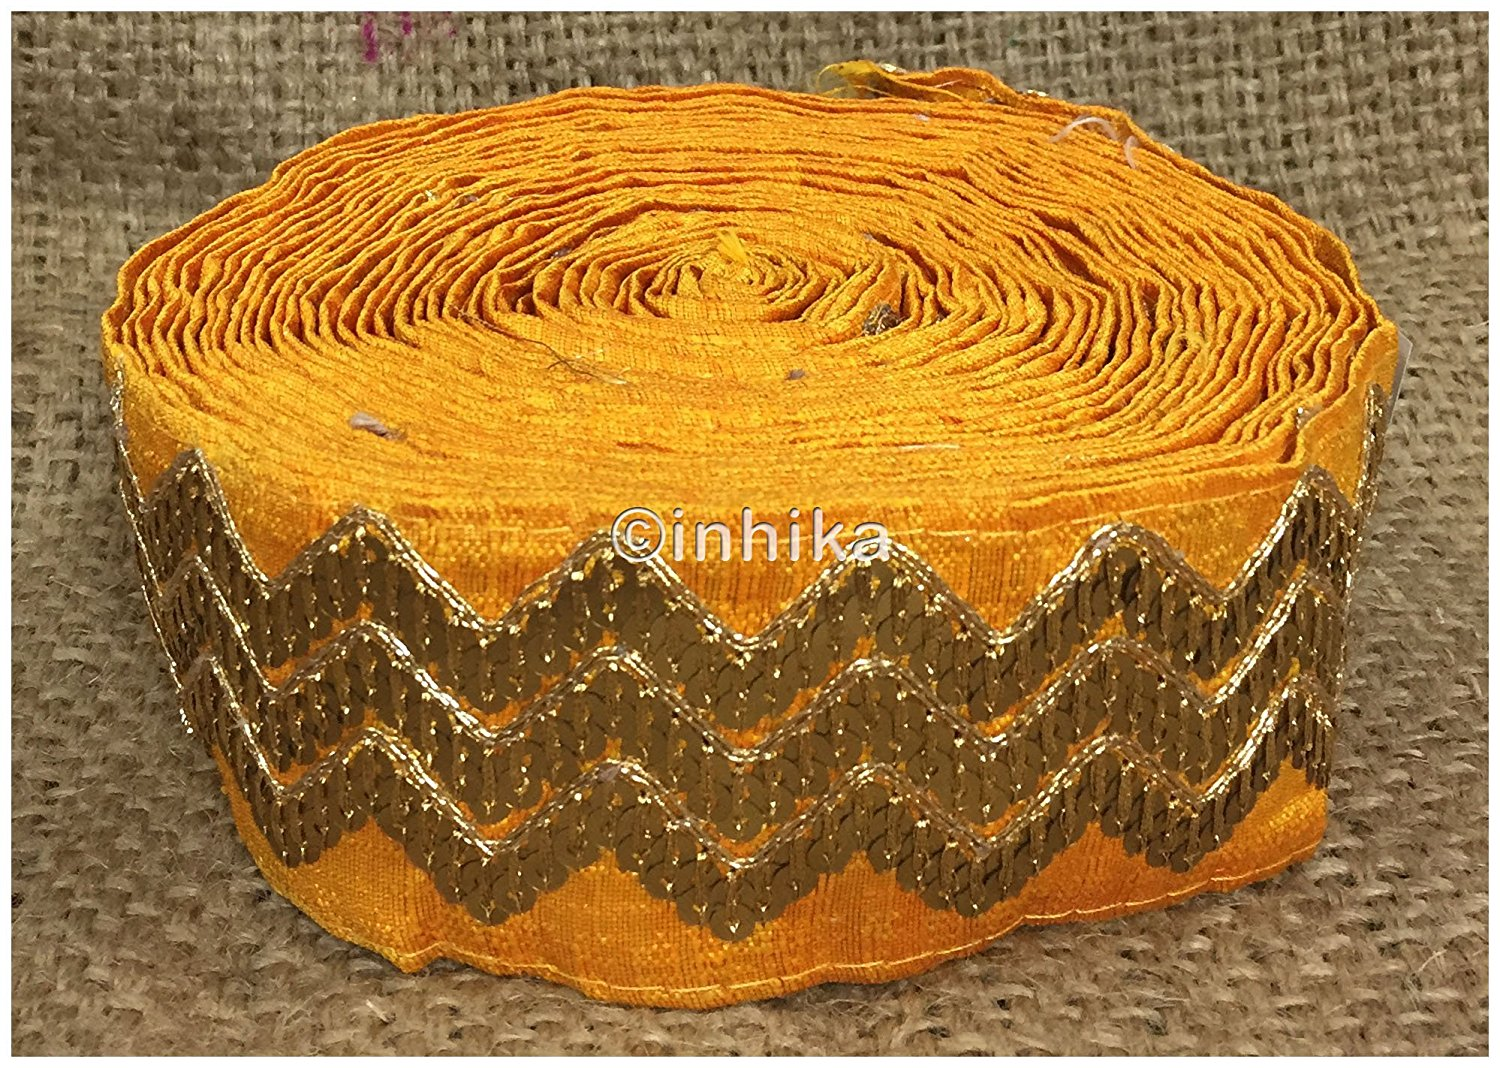 lace trim fabric lace material for dressmaking by the yard Yellow, Embroidery, Sequins, 3 Inch Wide material Cotton Mix, Dupion